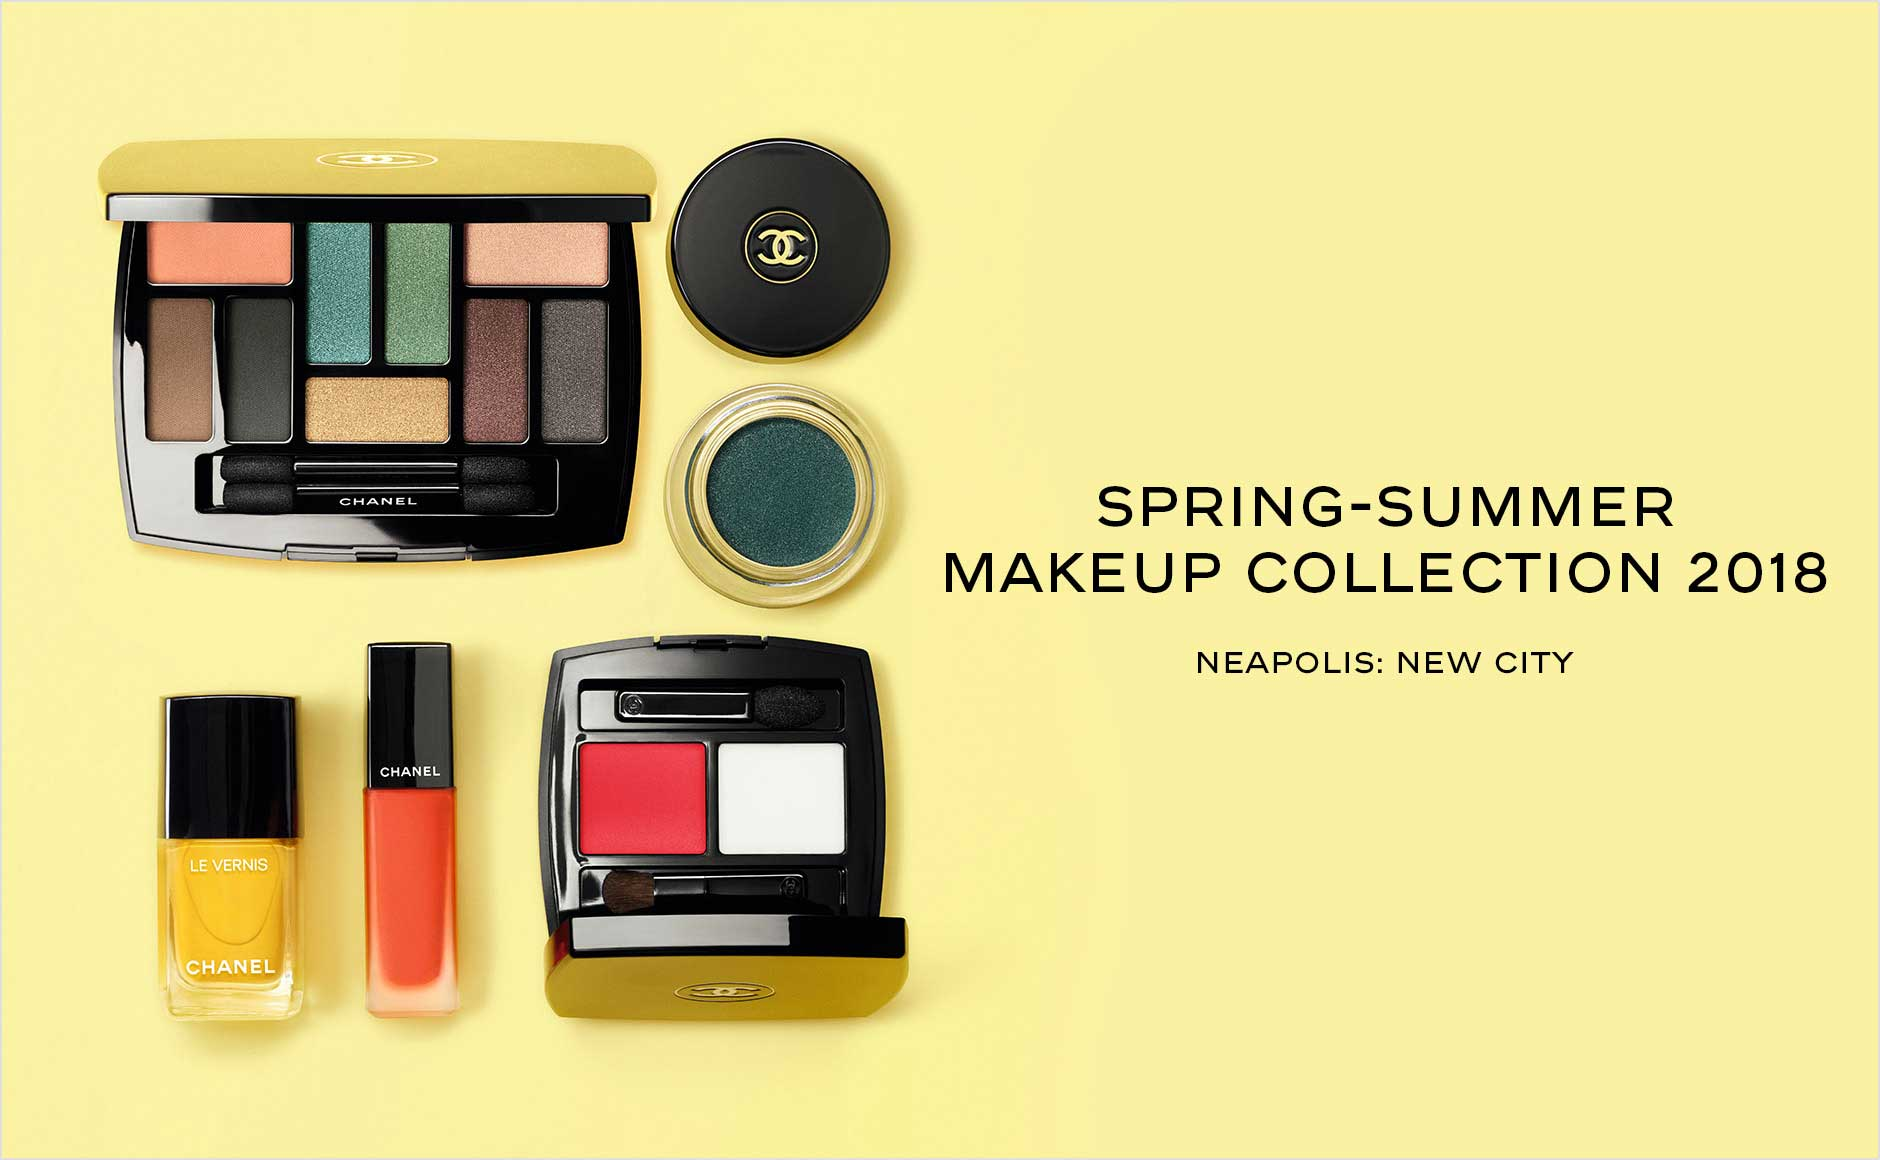 Spring-Summer Makeup Collection 2018 - Neapolis: New City